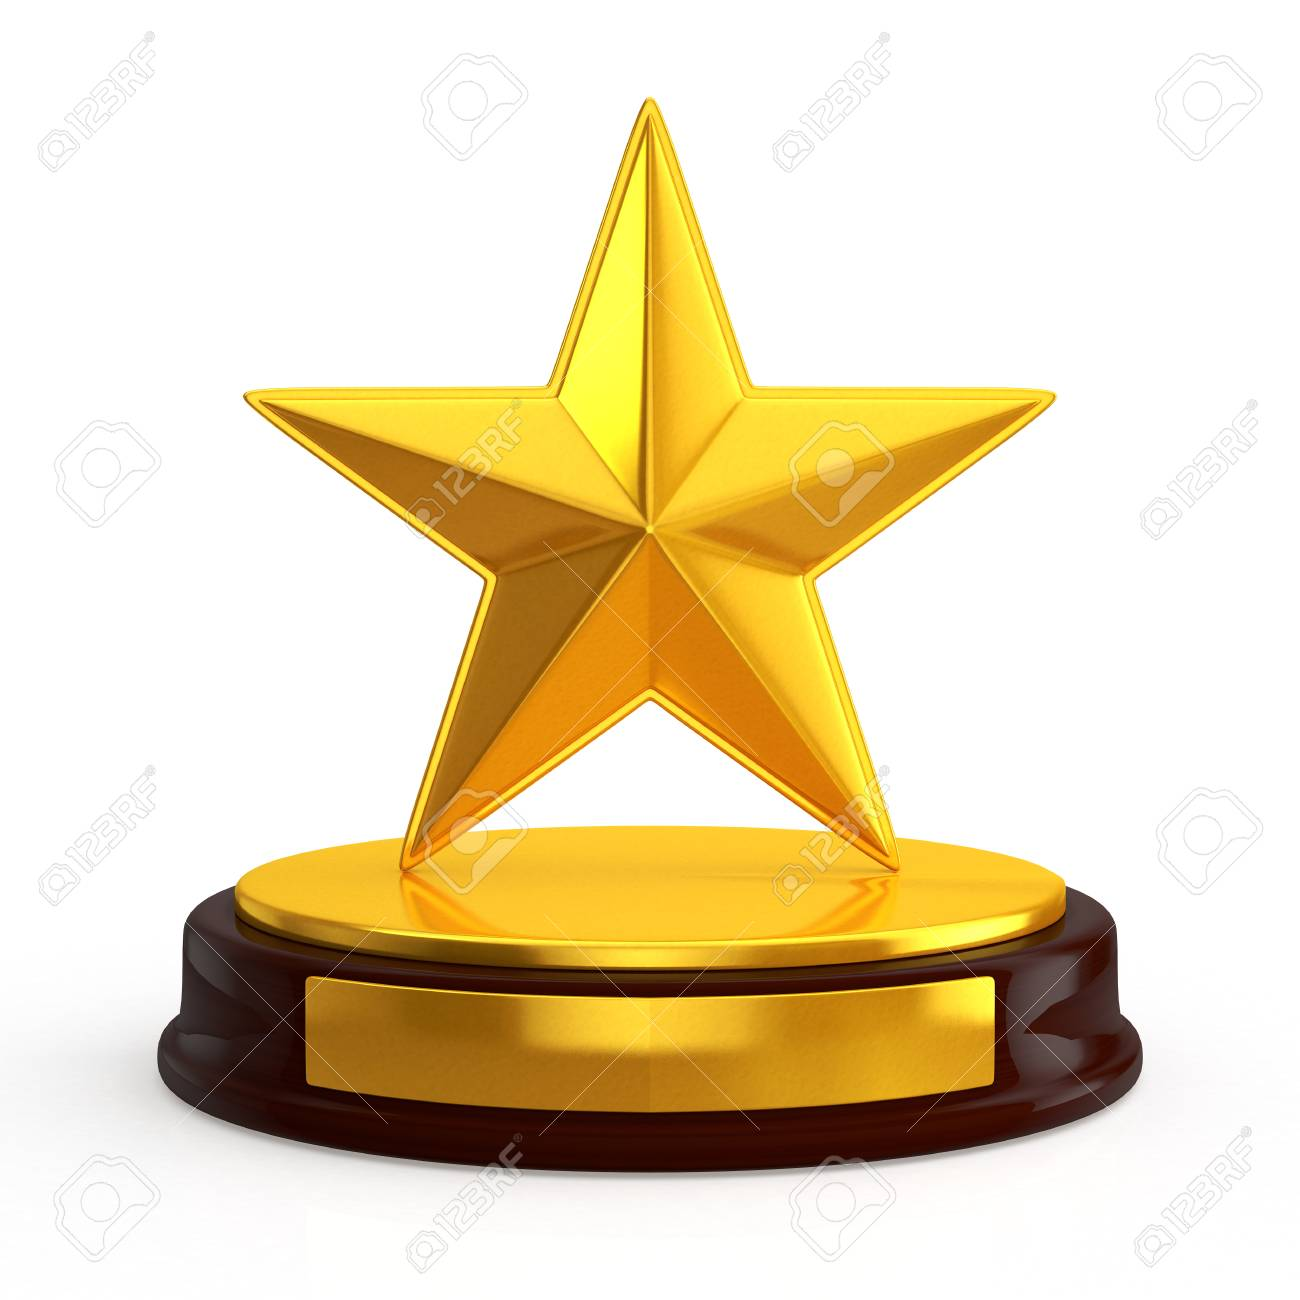 Star Trophy Stock Photo Picture And Royalty Free Image 67248317